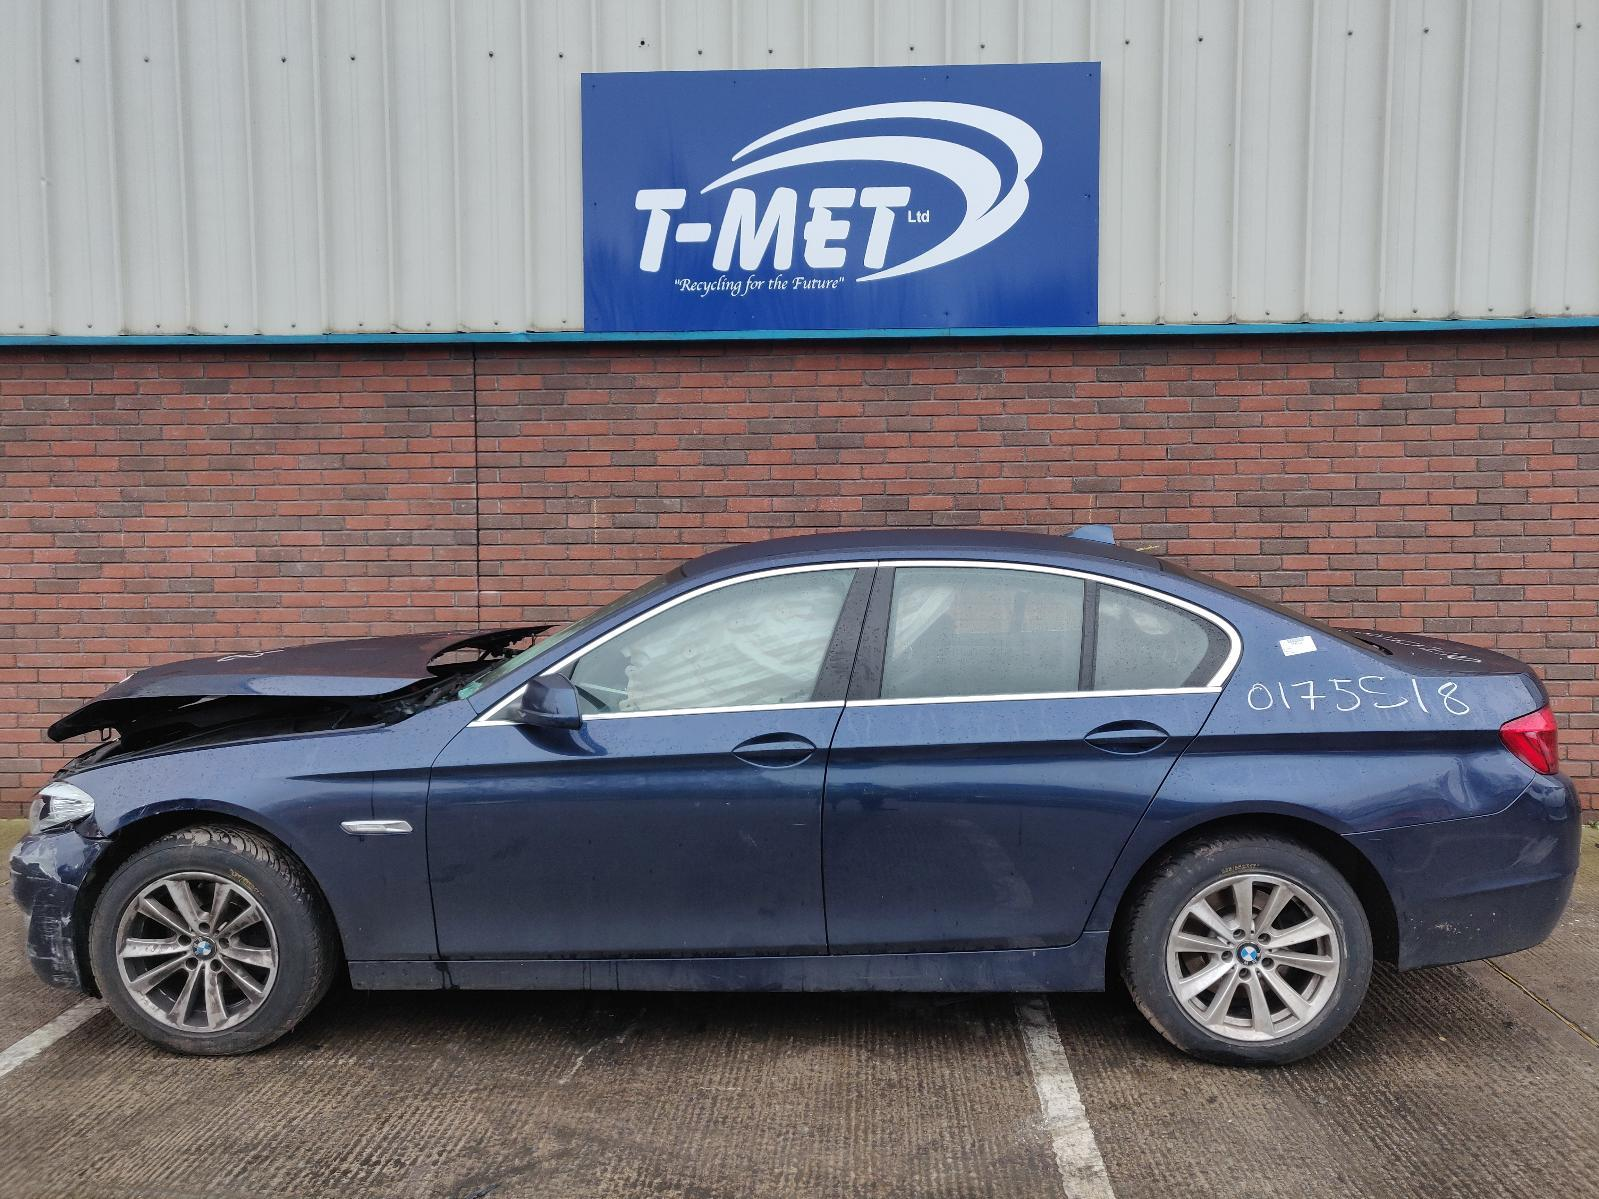 2013 BMW 5 SERIES 520D EFFICENT DYNAMICS Image